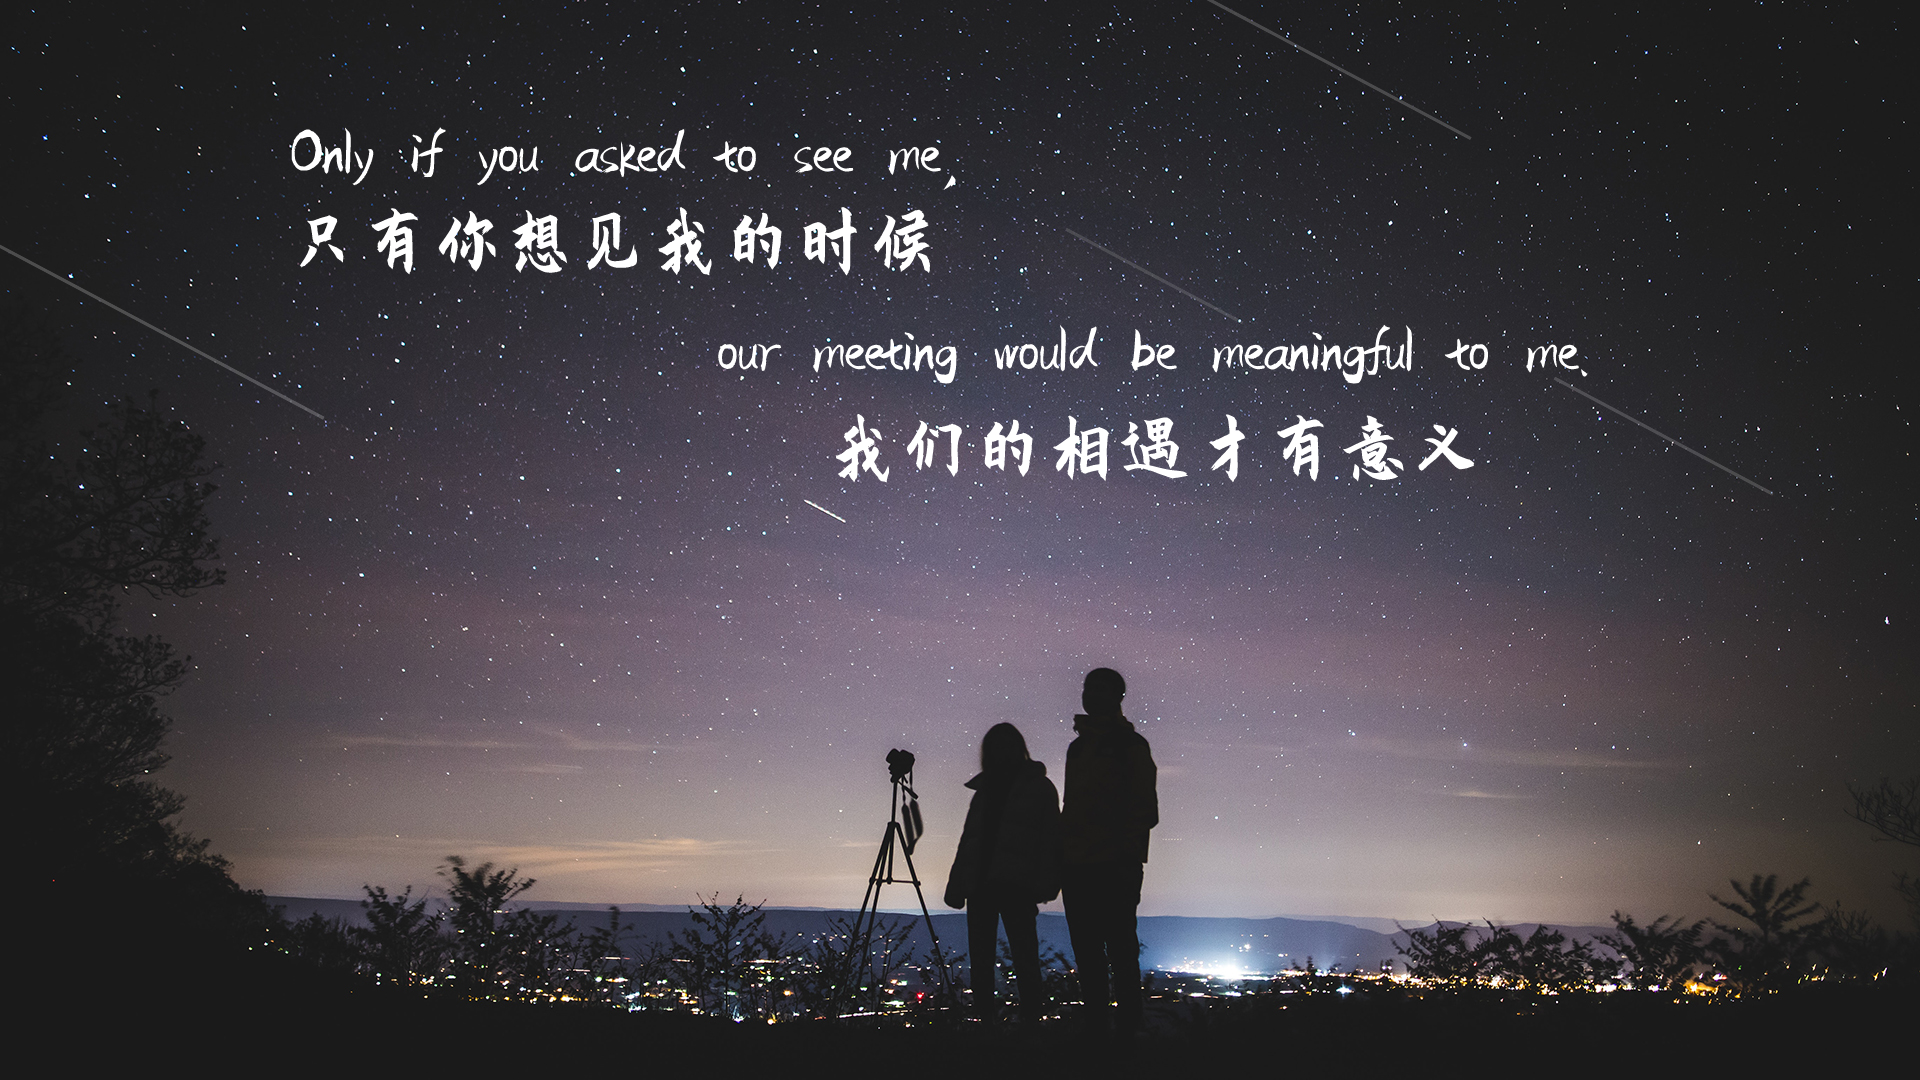 《想见你》Only if you asked to see me,our meeting would be meaningful to me.